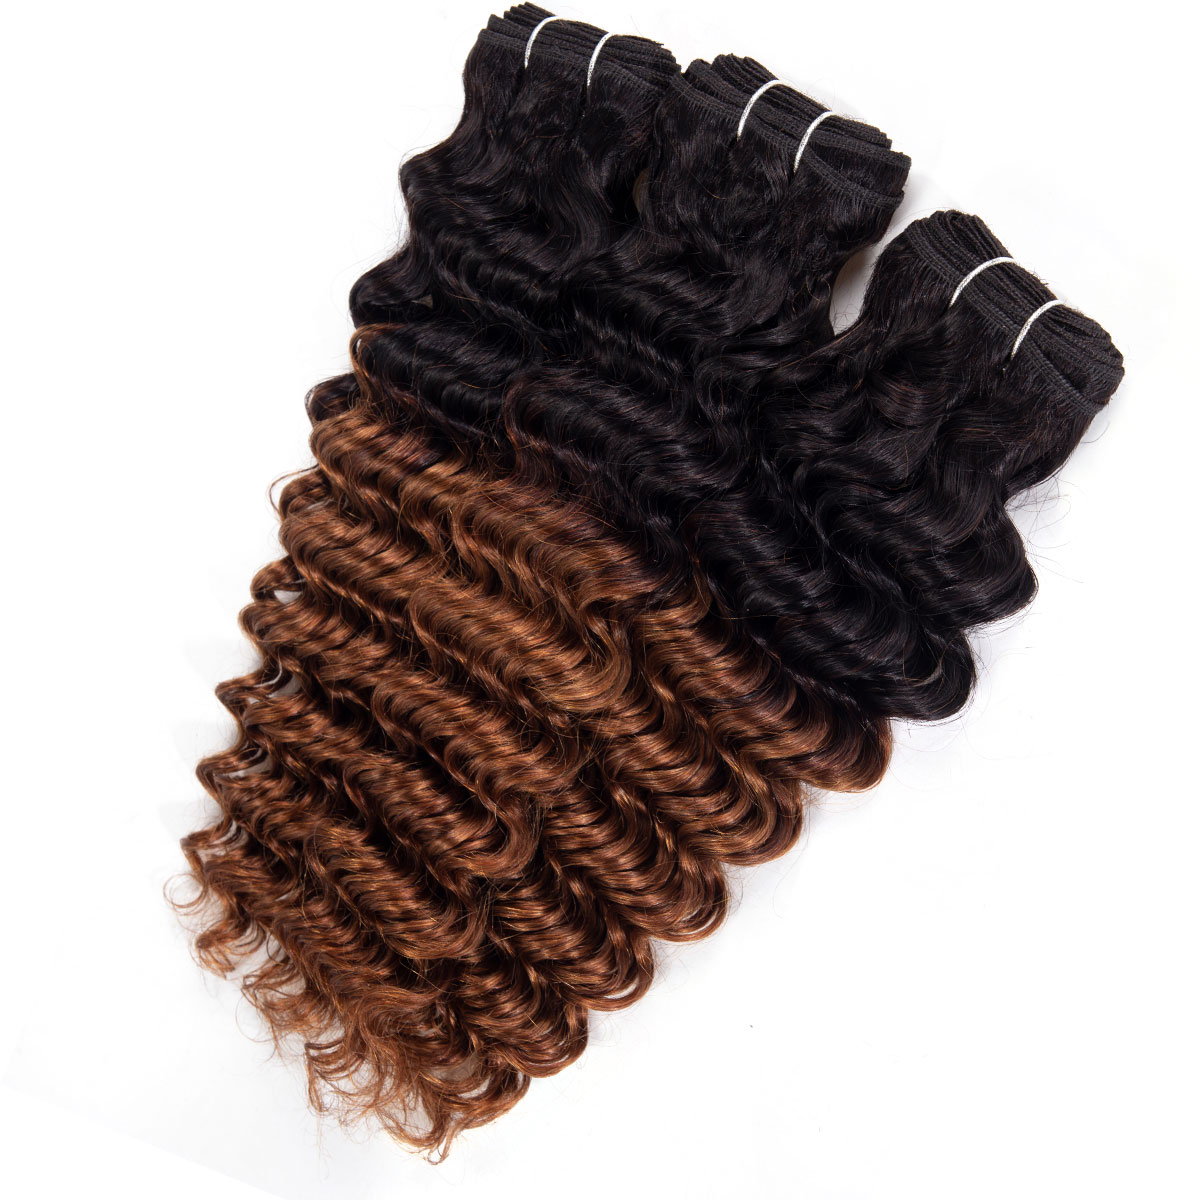 1b 30 deep wave bundles